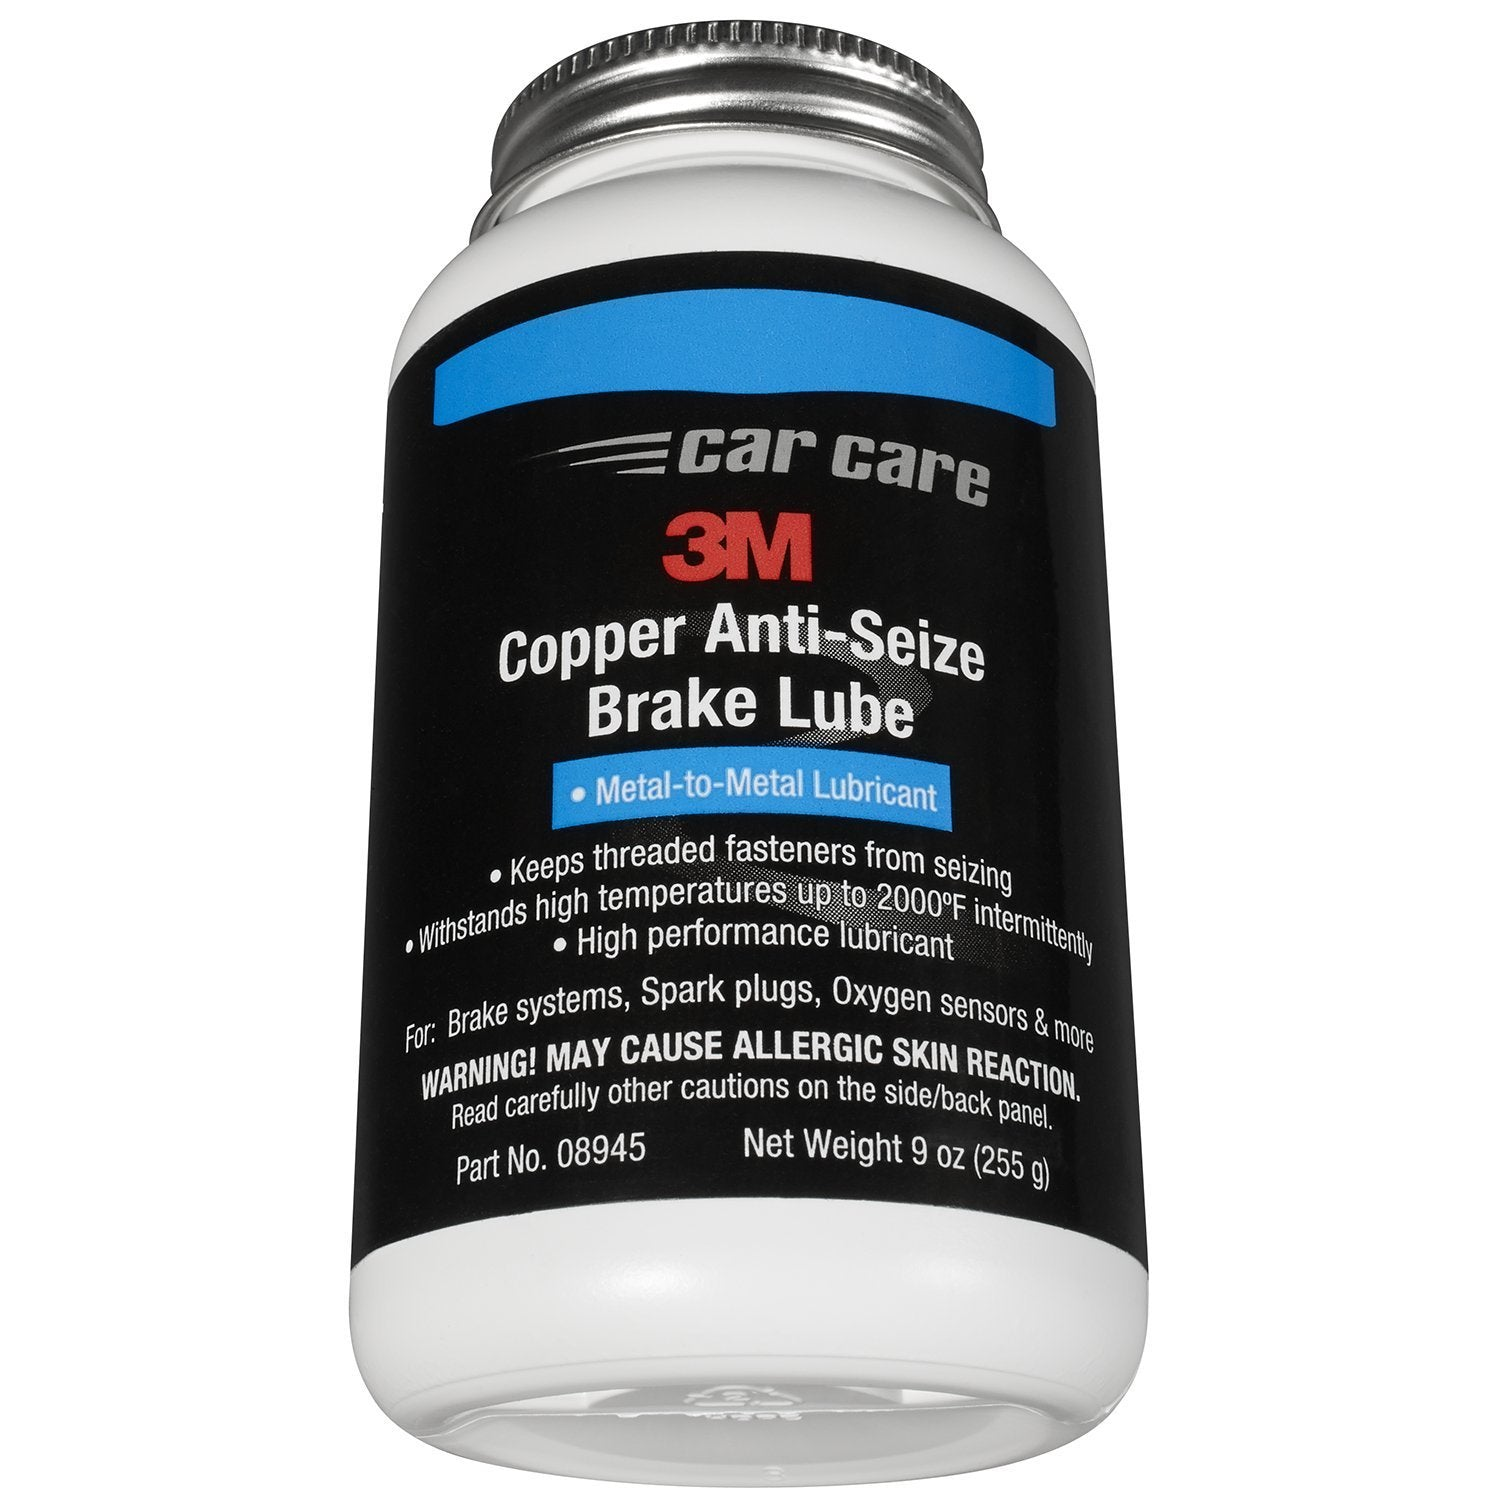 3M Copper Anti Seize Brake Lube